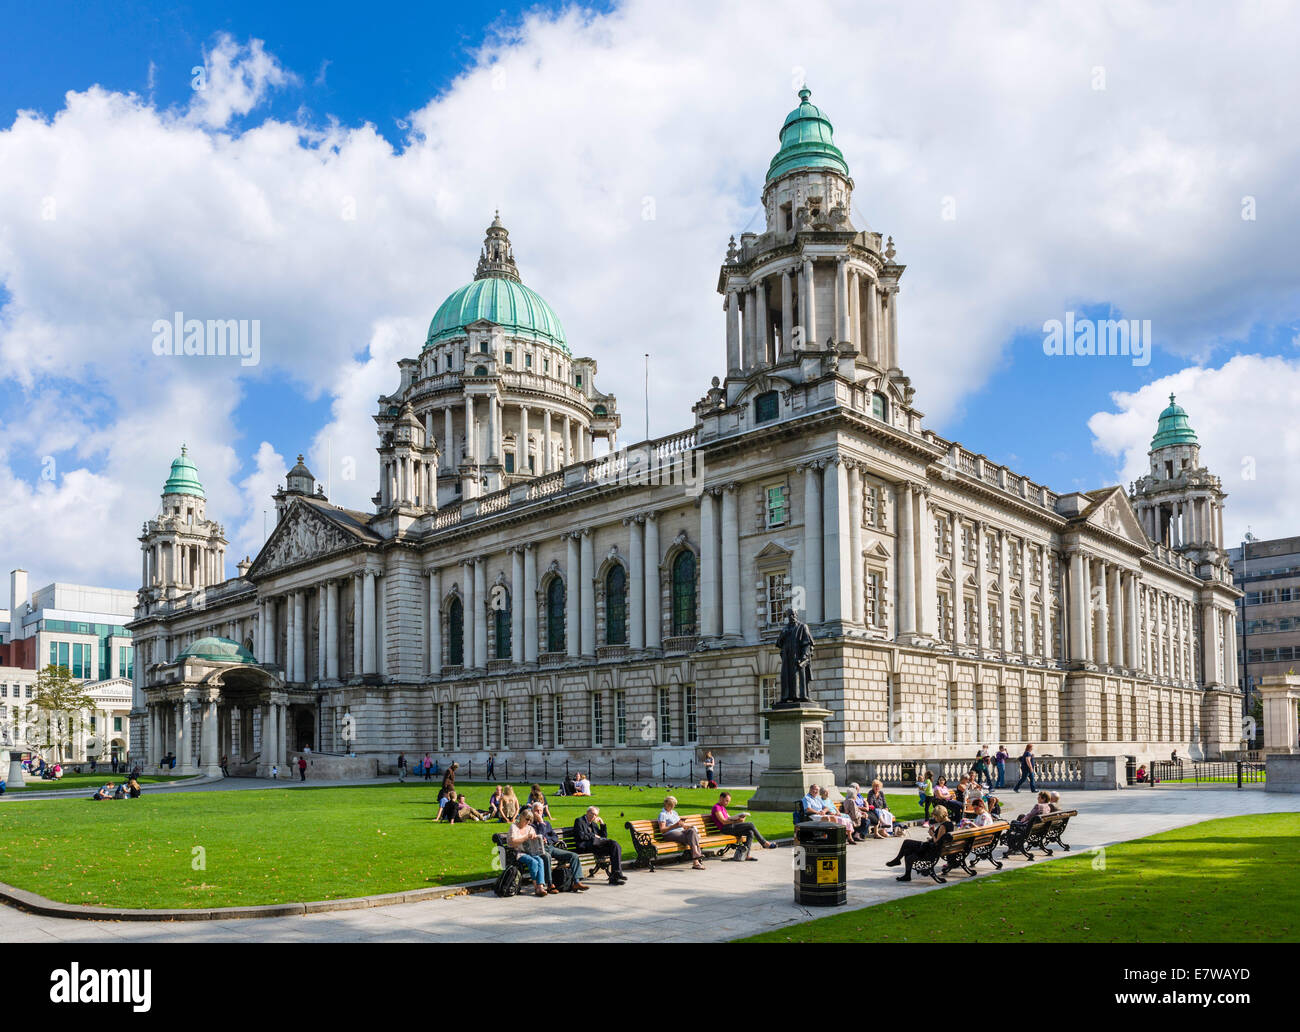 City Hall, Donegall Square, Belfast, Northern Ireland, UK - Stock Image